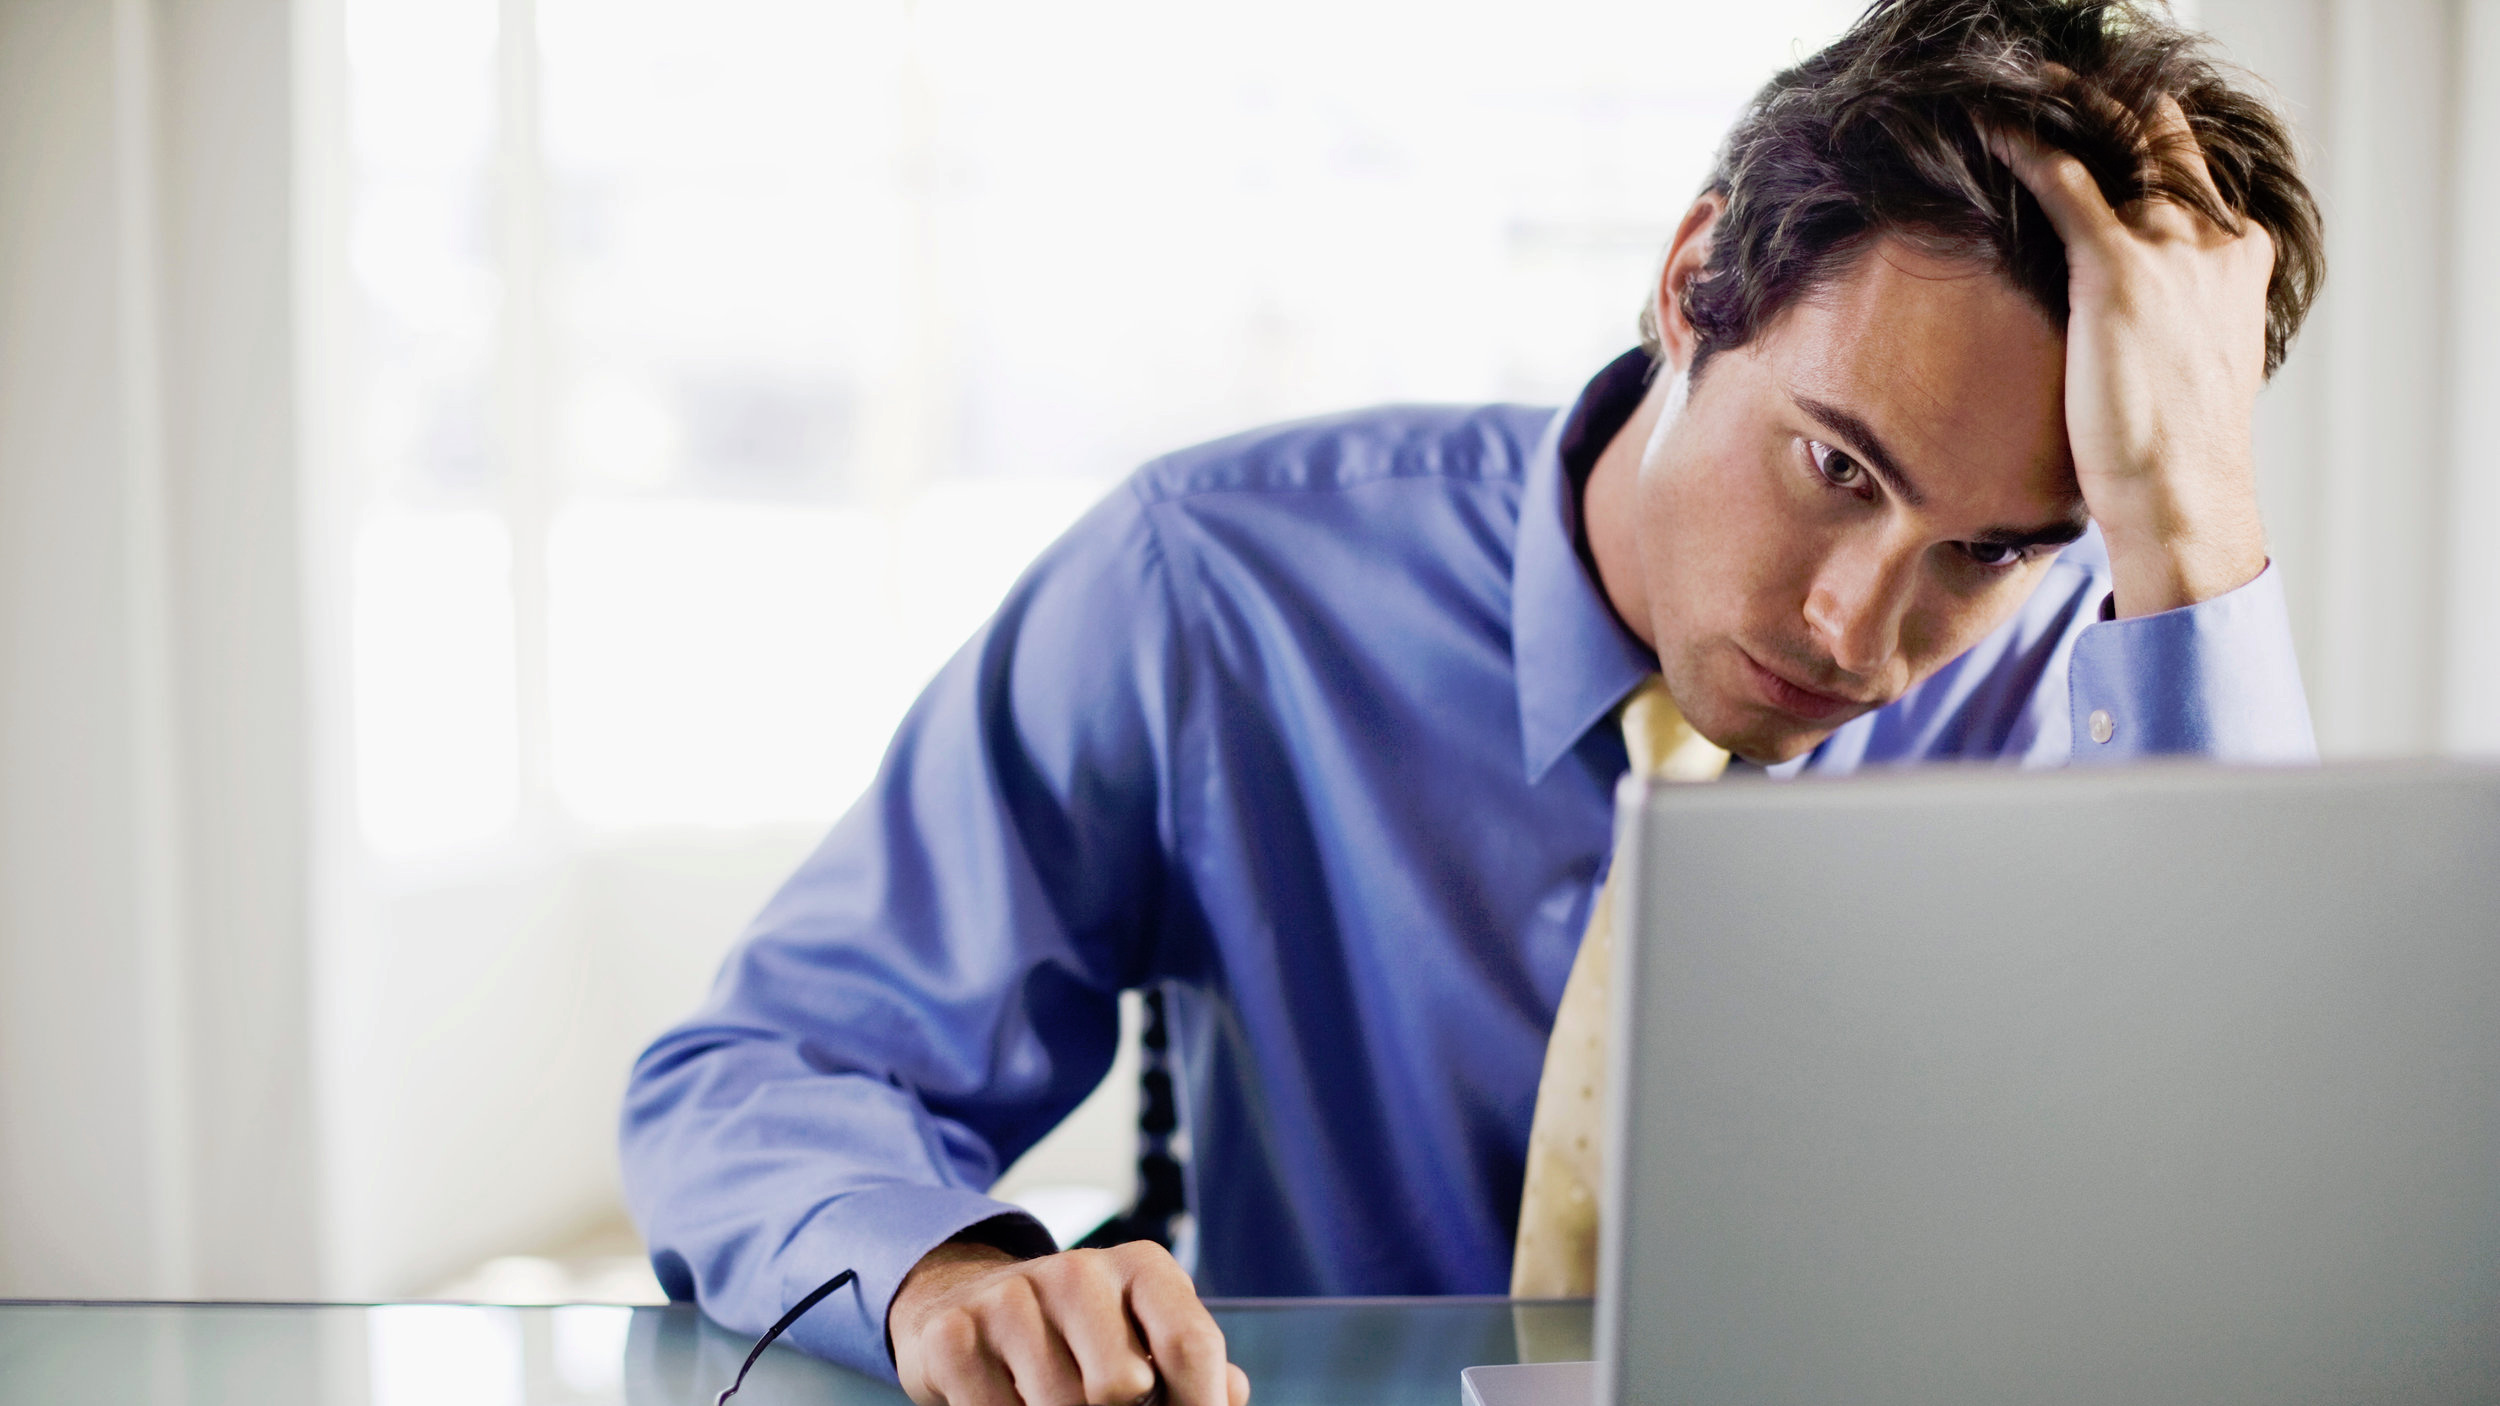 Canva+-+Frustrated+businessman+with+laptop+computer.jpg